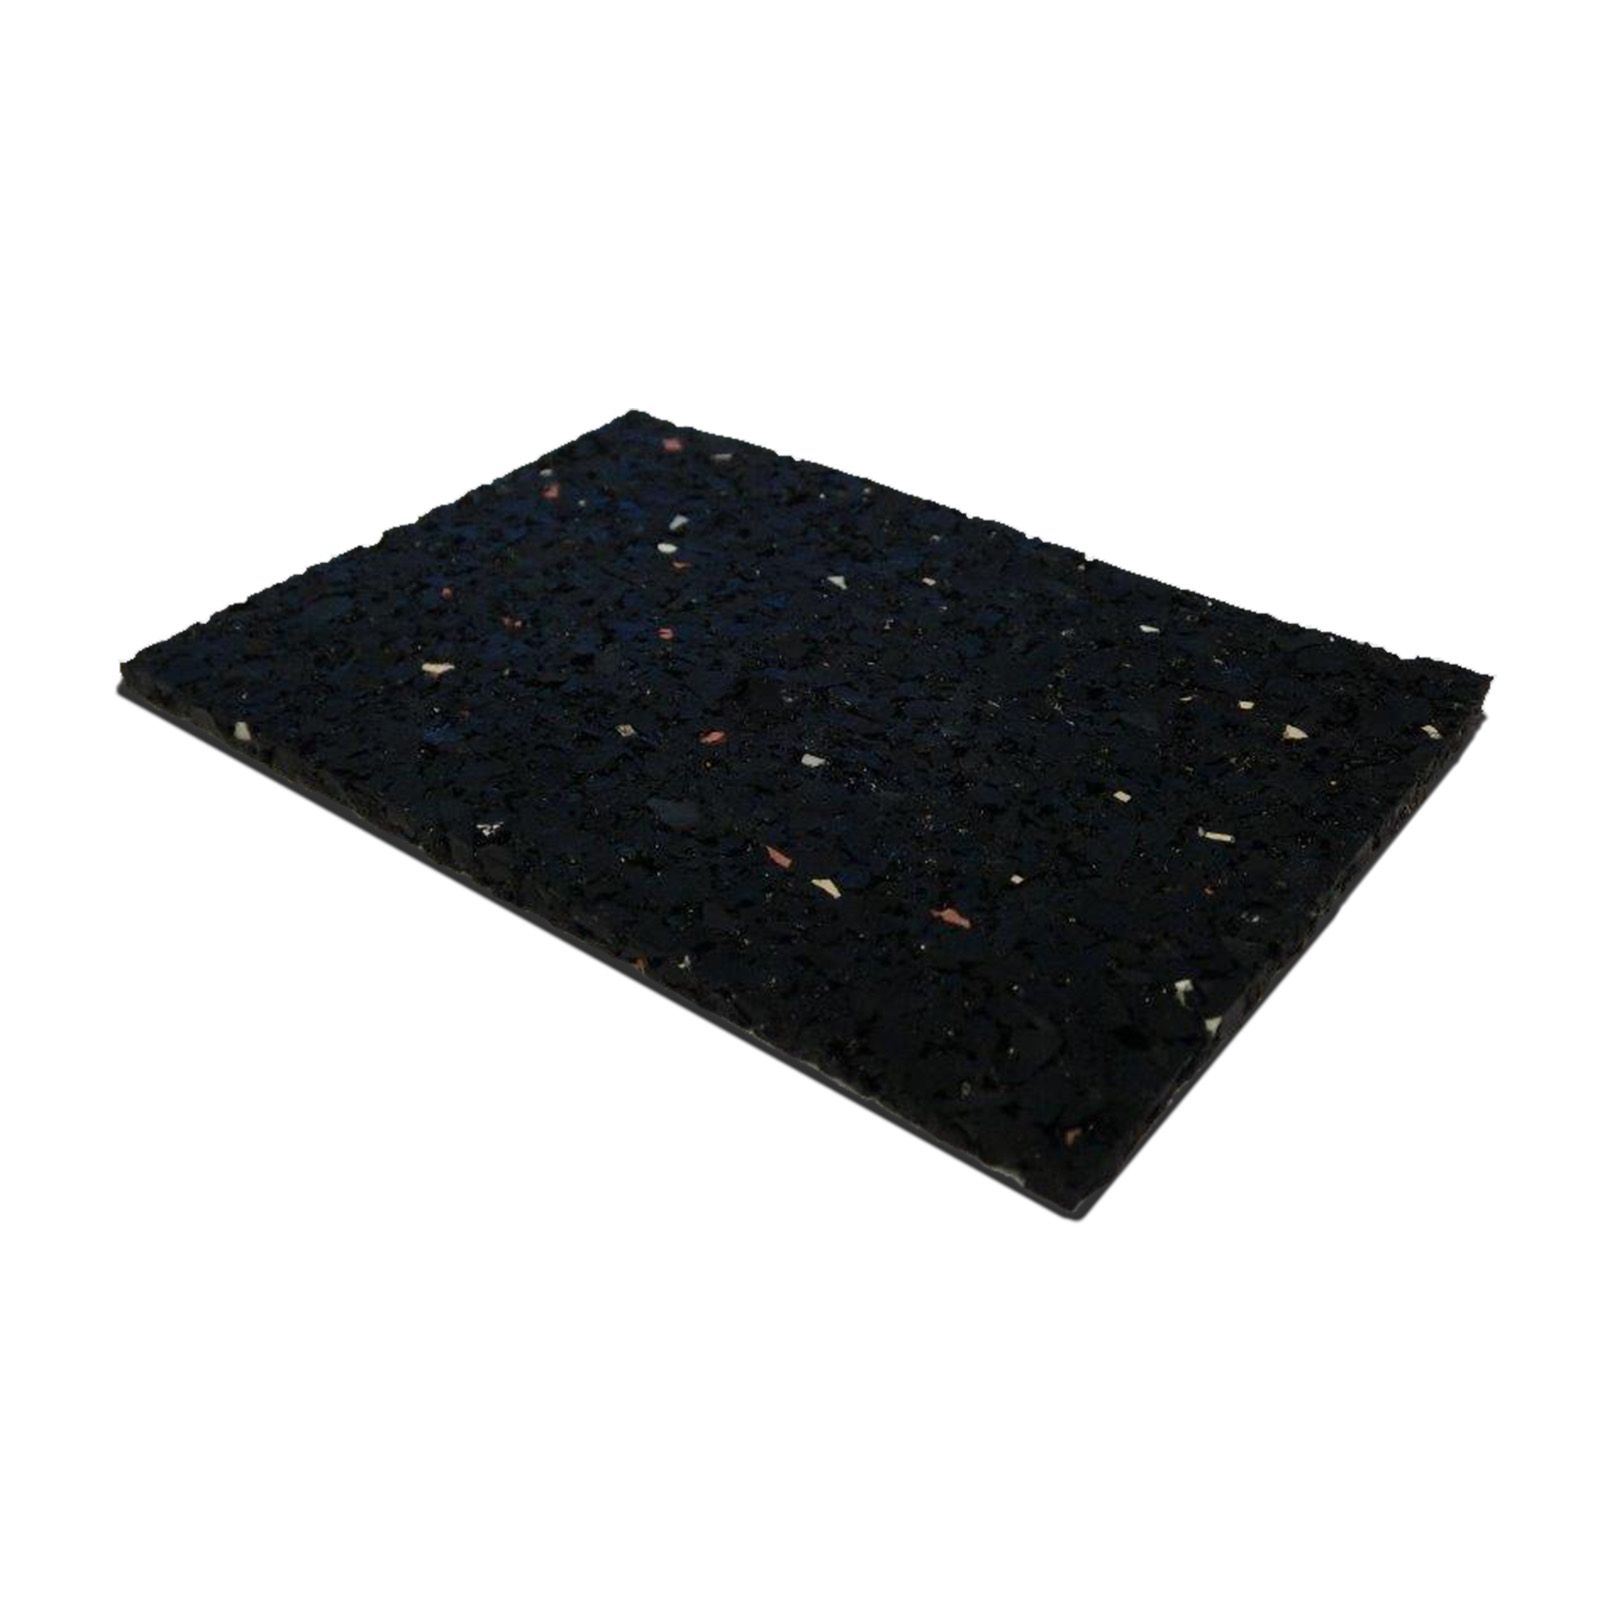 14737 Rubber leveling pads